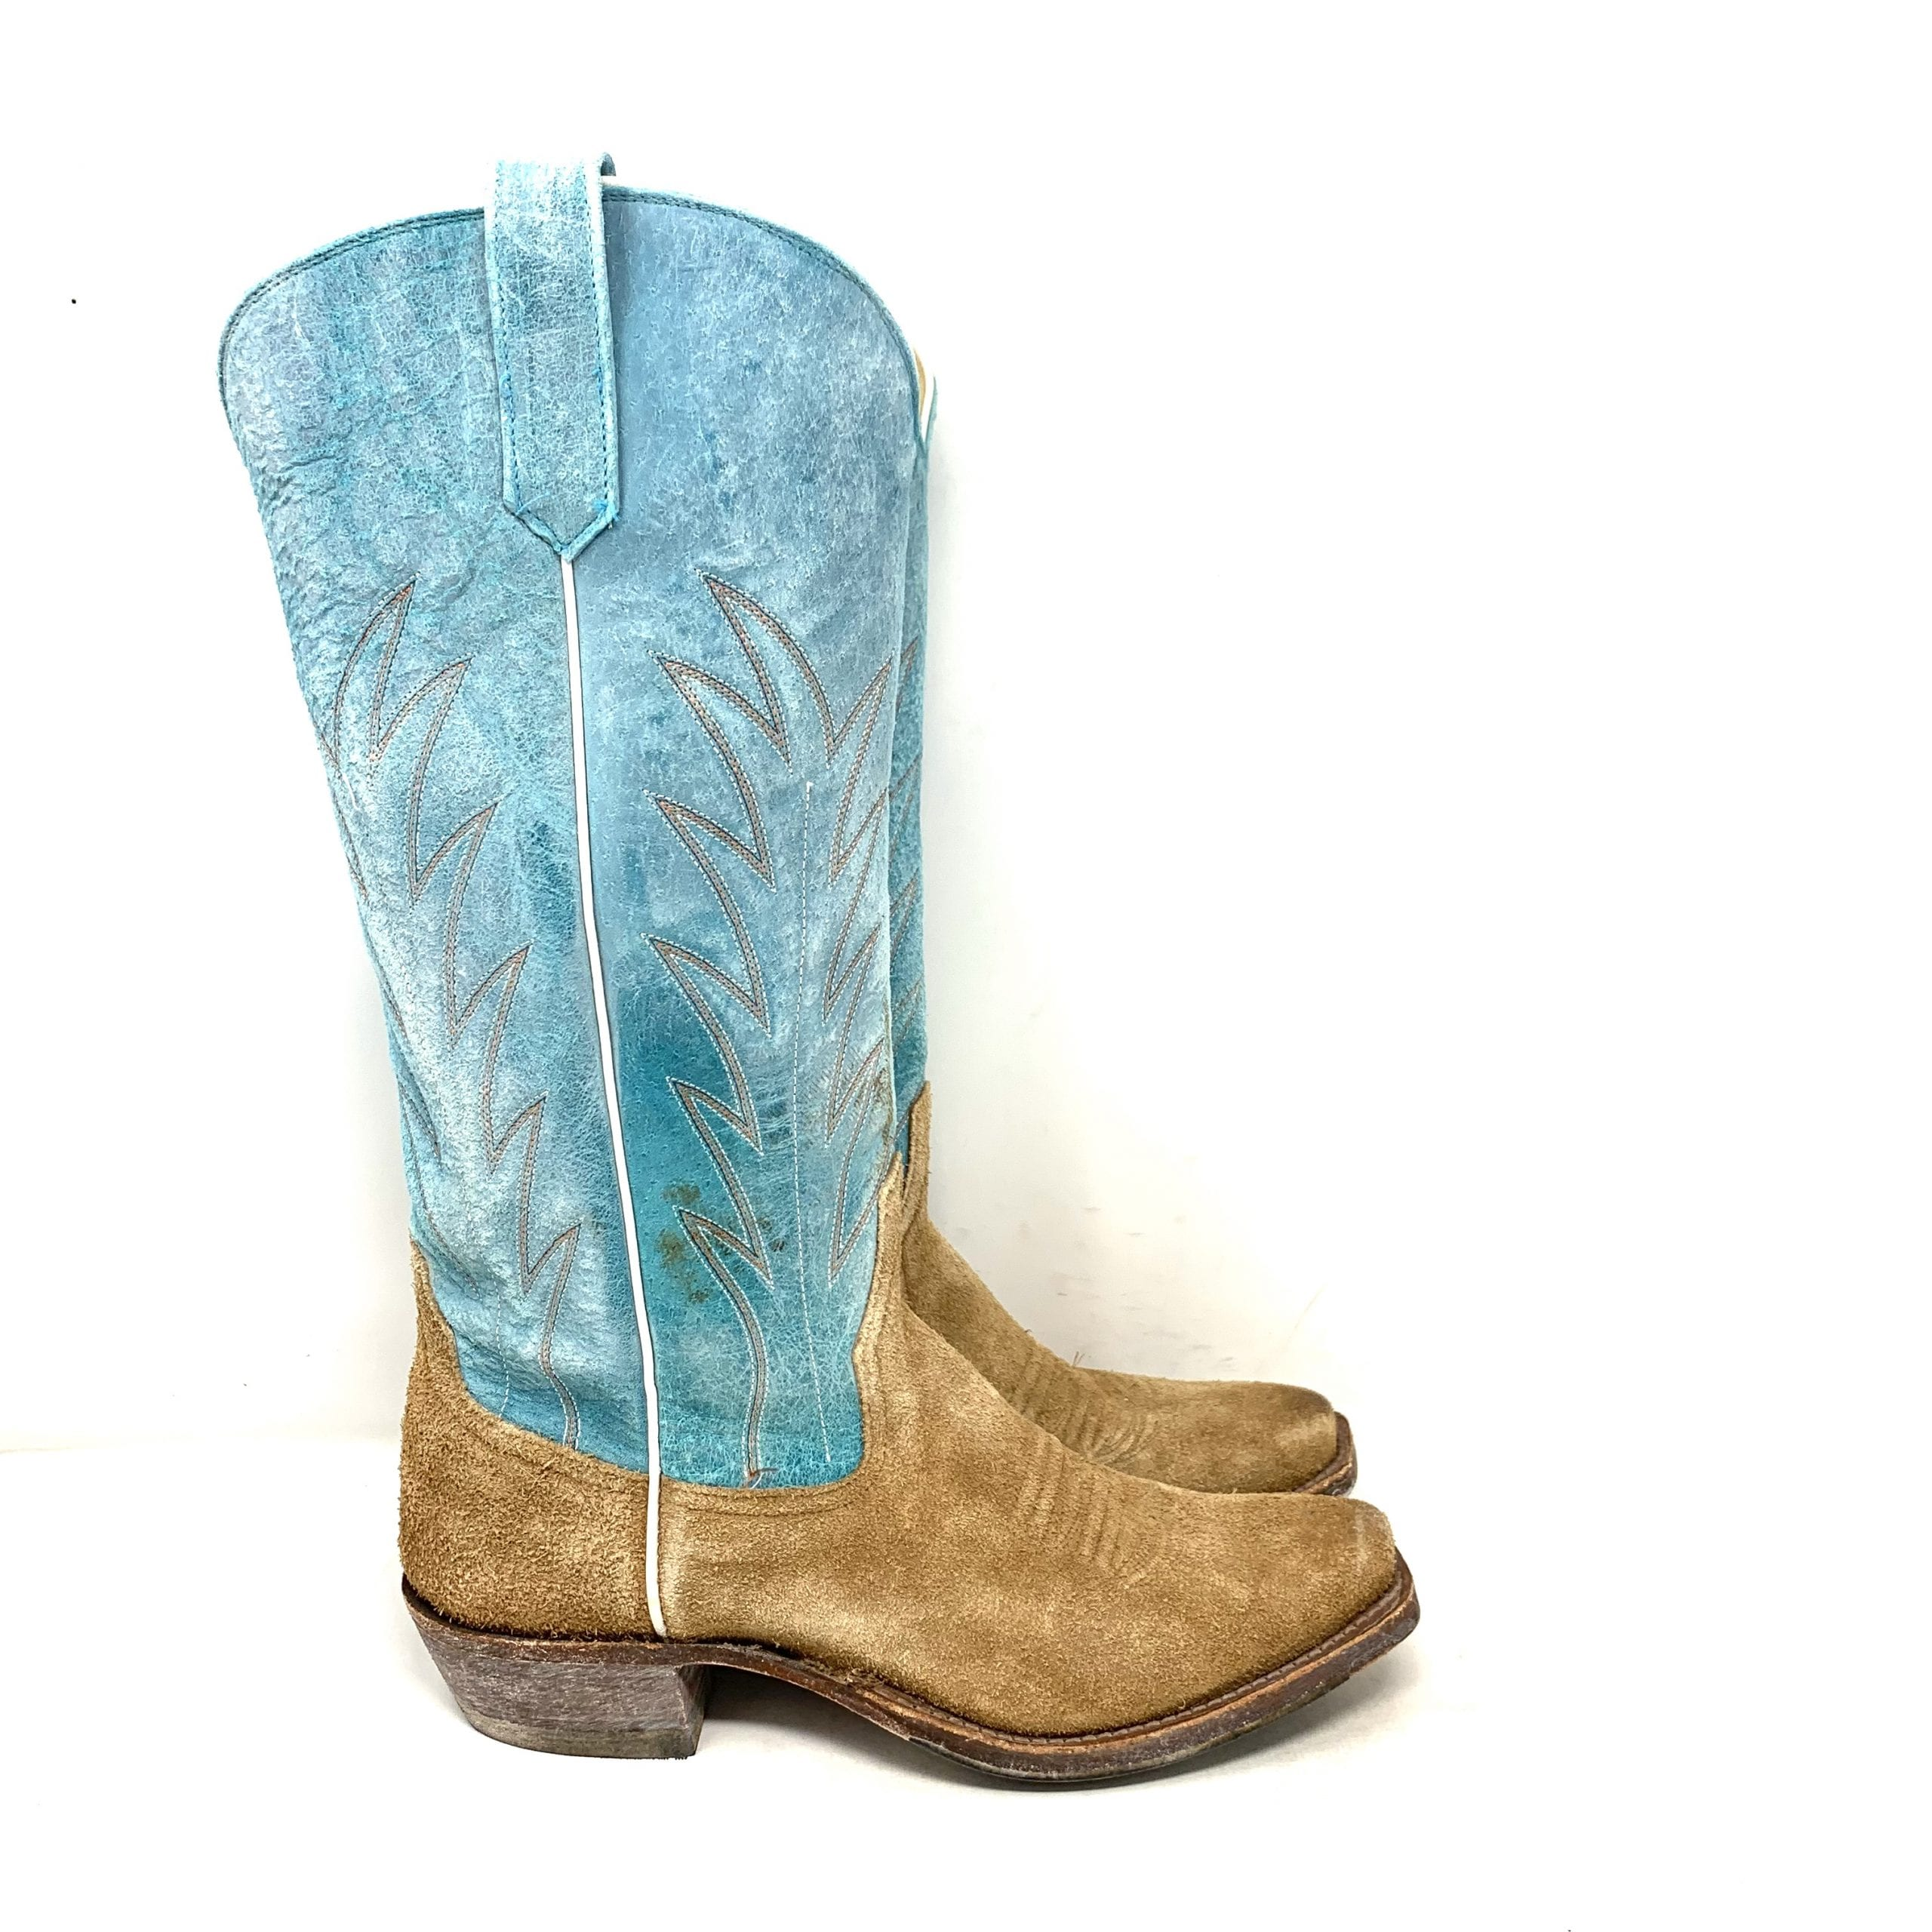 RIOS OF MERCEDES TURQUOISE BOOTS - Kemo